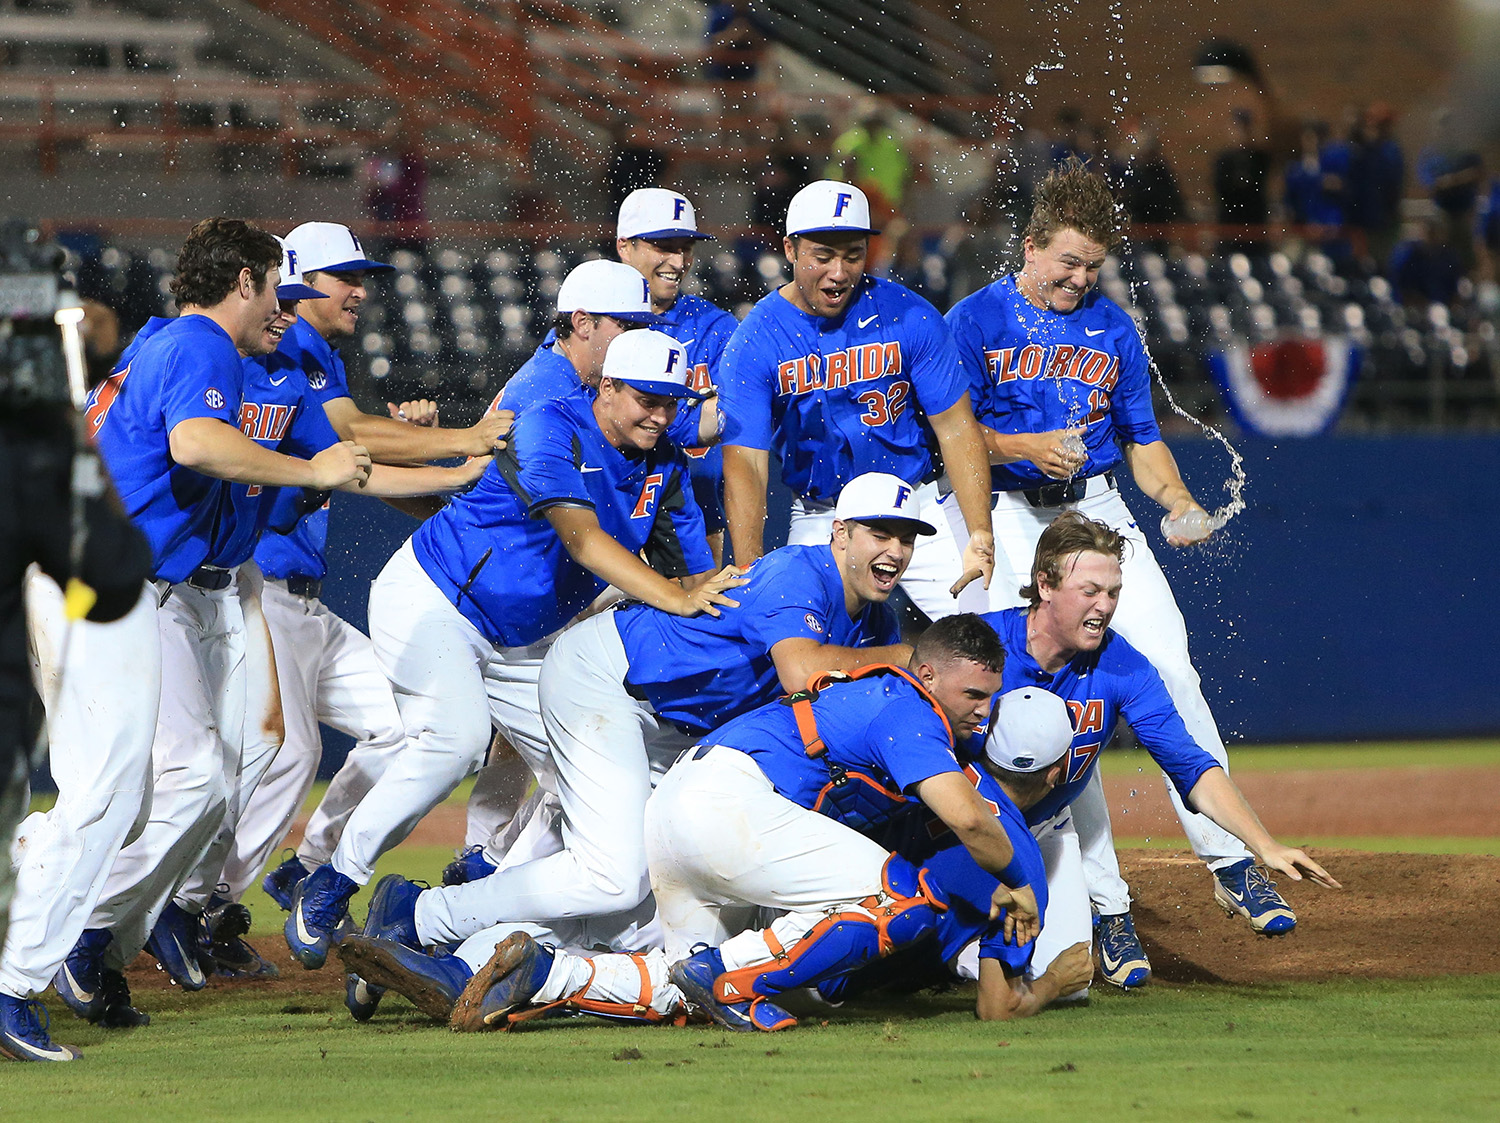 Florida players celebrate after defeating Wake Forest 3-0 in an NCAA college super regional baseball game Monday, June 12, 2017, in Gainesville, Fla. (AP Photo/Matt Stamey)